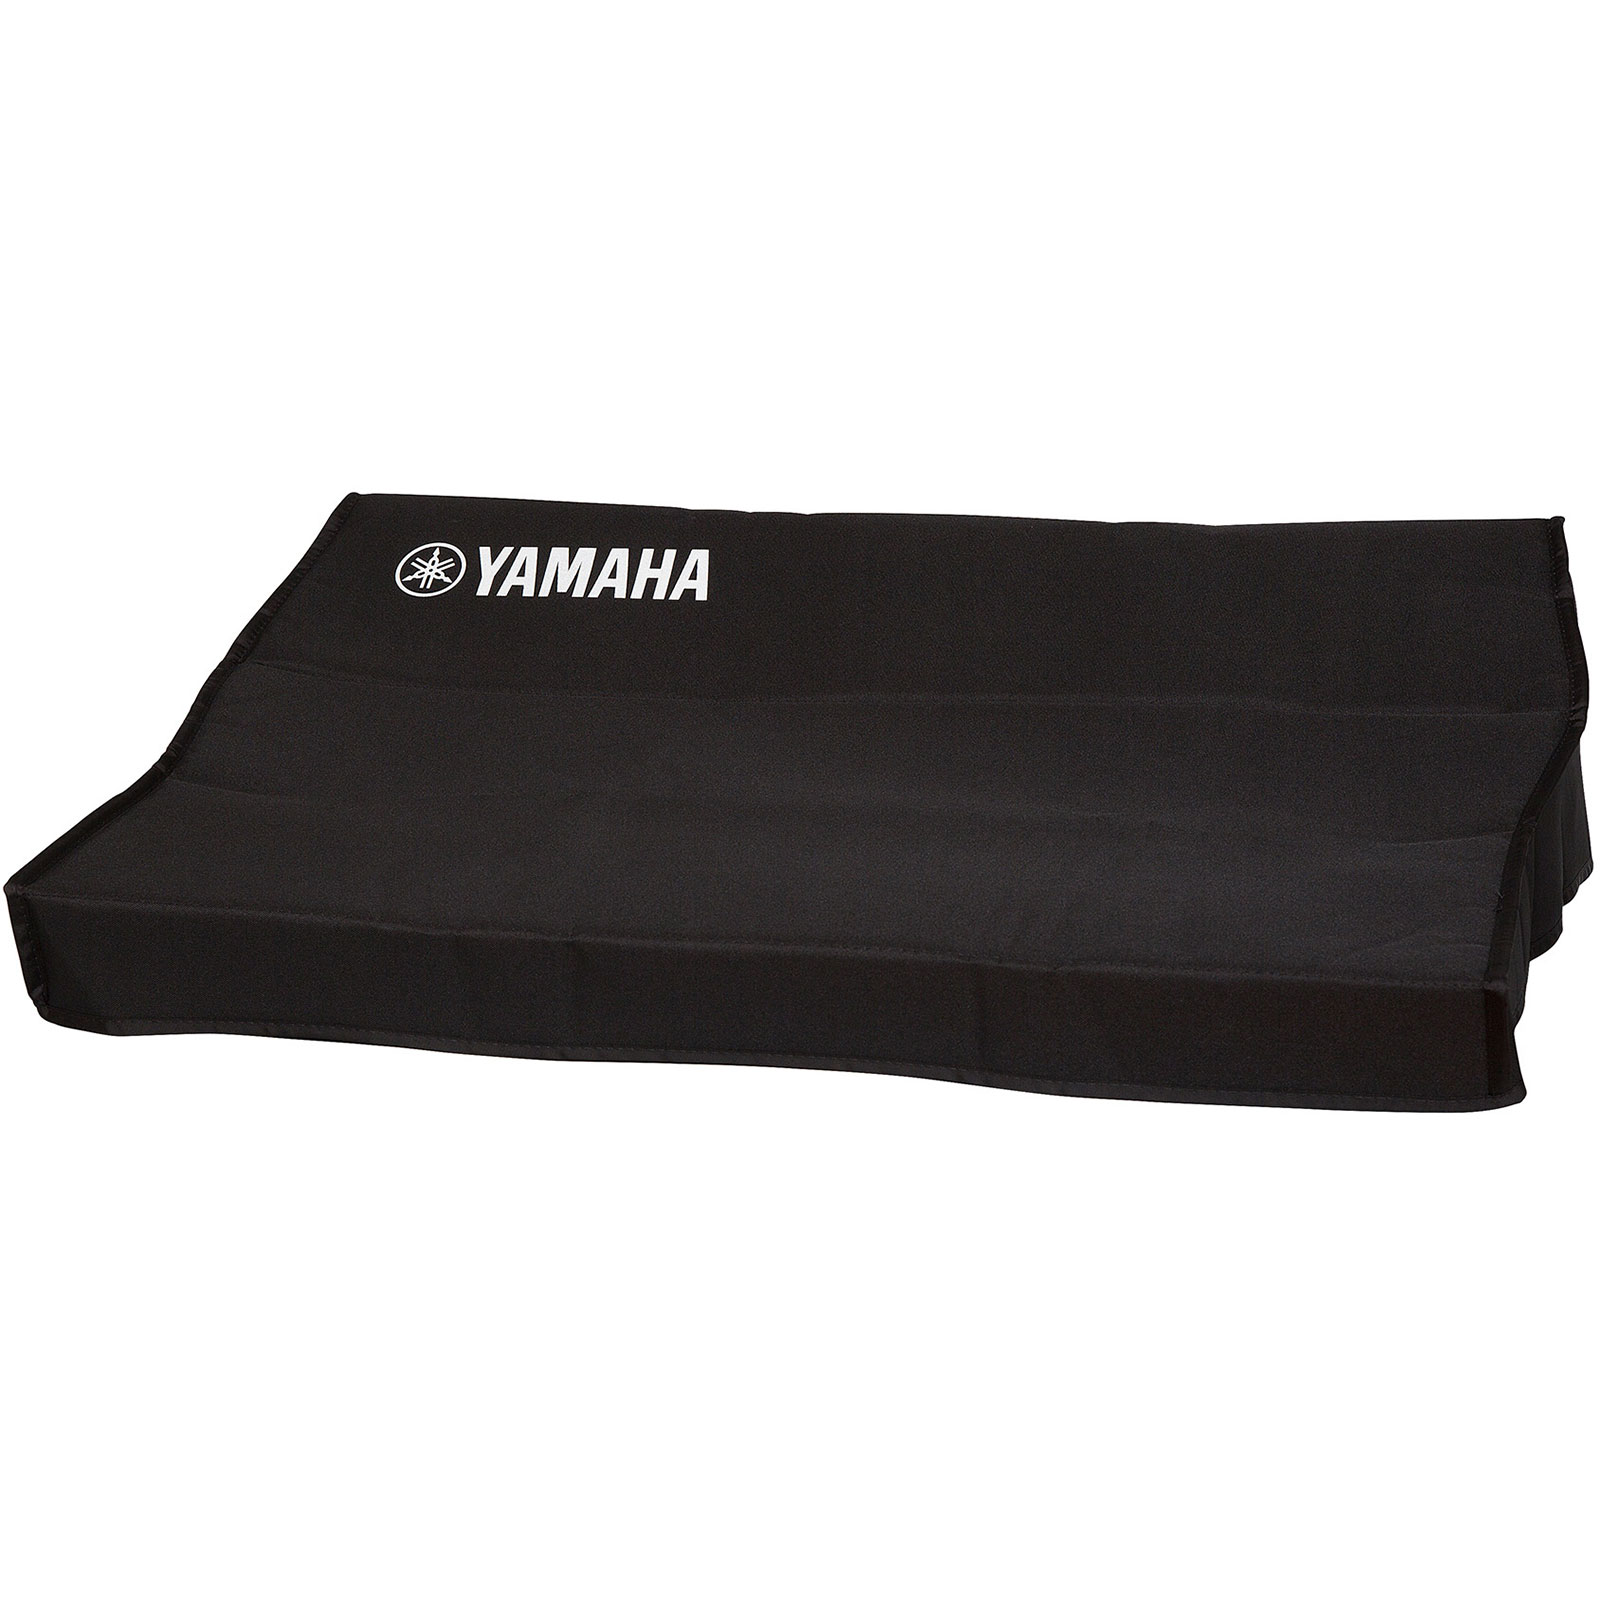 Yamaha Padded Dust Cover for TF5 Mixer